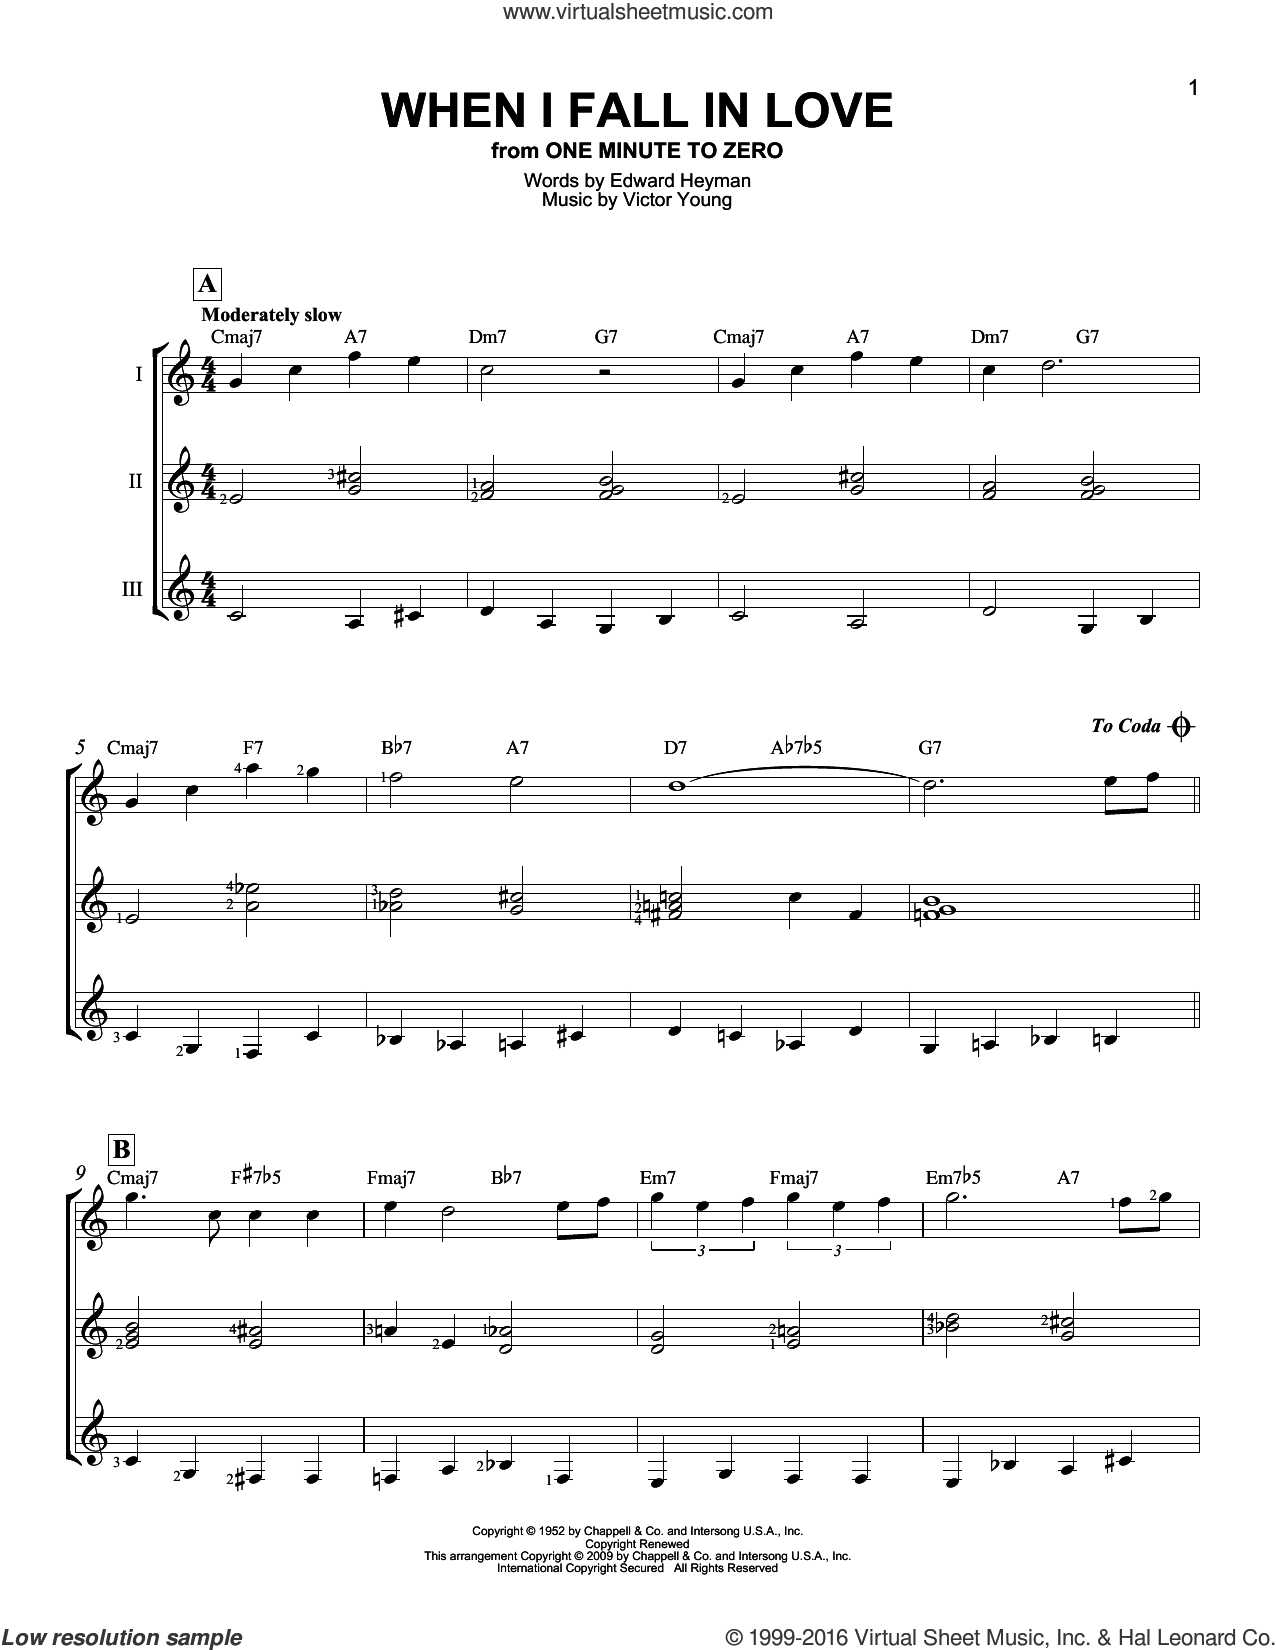 When I Fall In Love sheet music for guitar ensemble by Edward Heyman, Carpenters, The Lettermen and Victor Young. Score Image Preview.